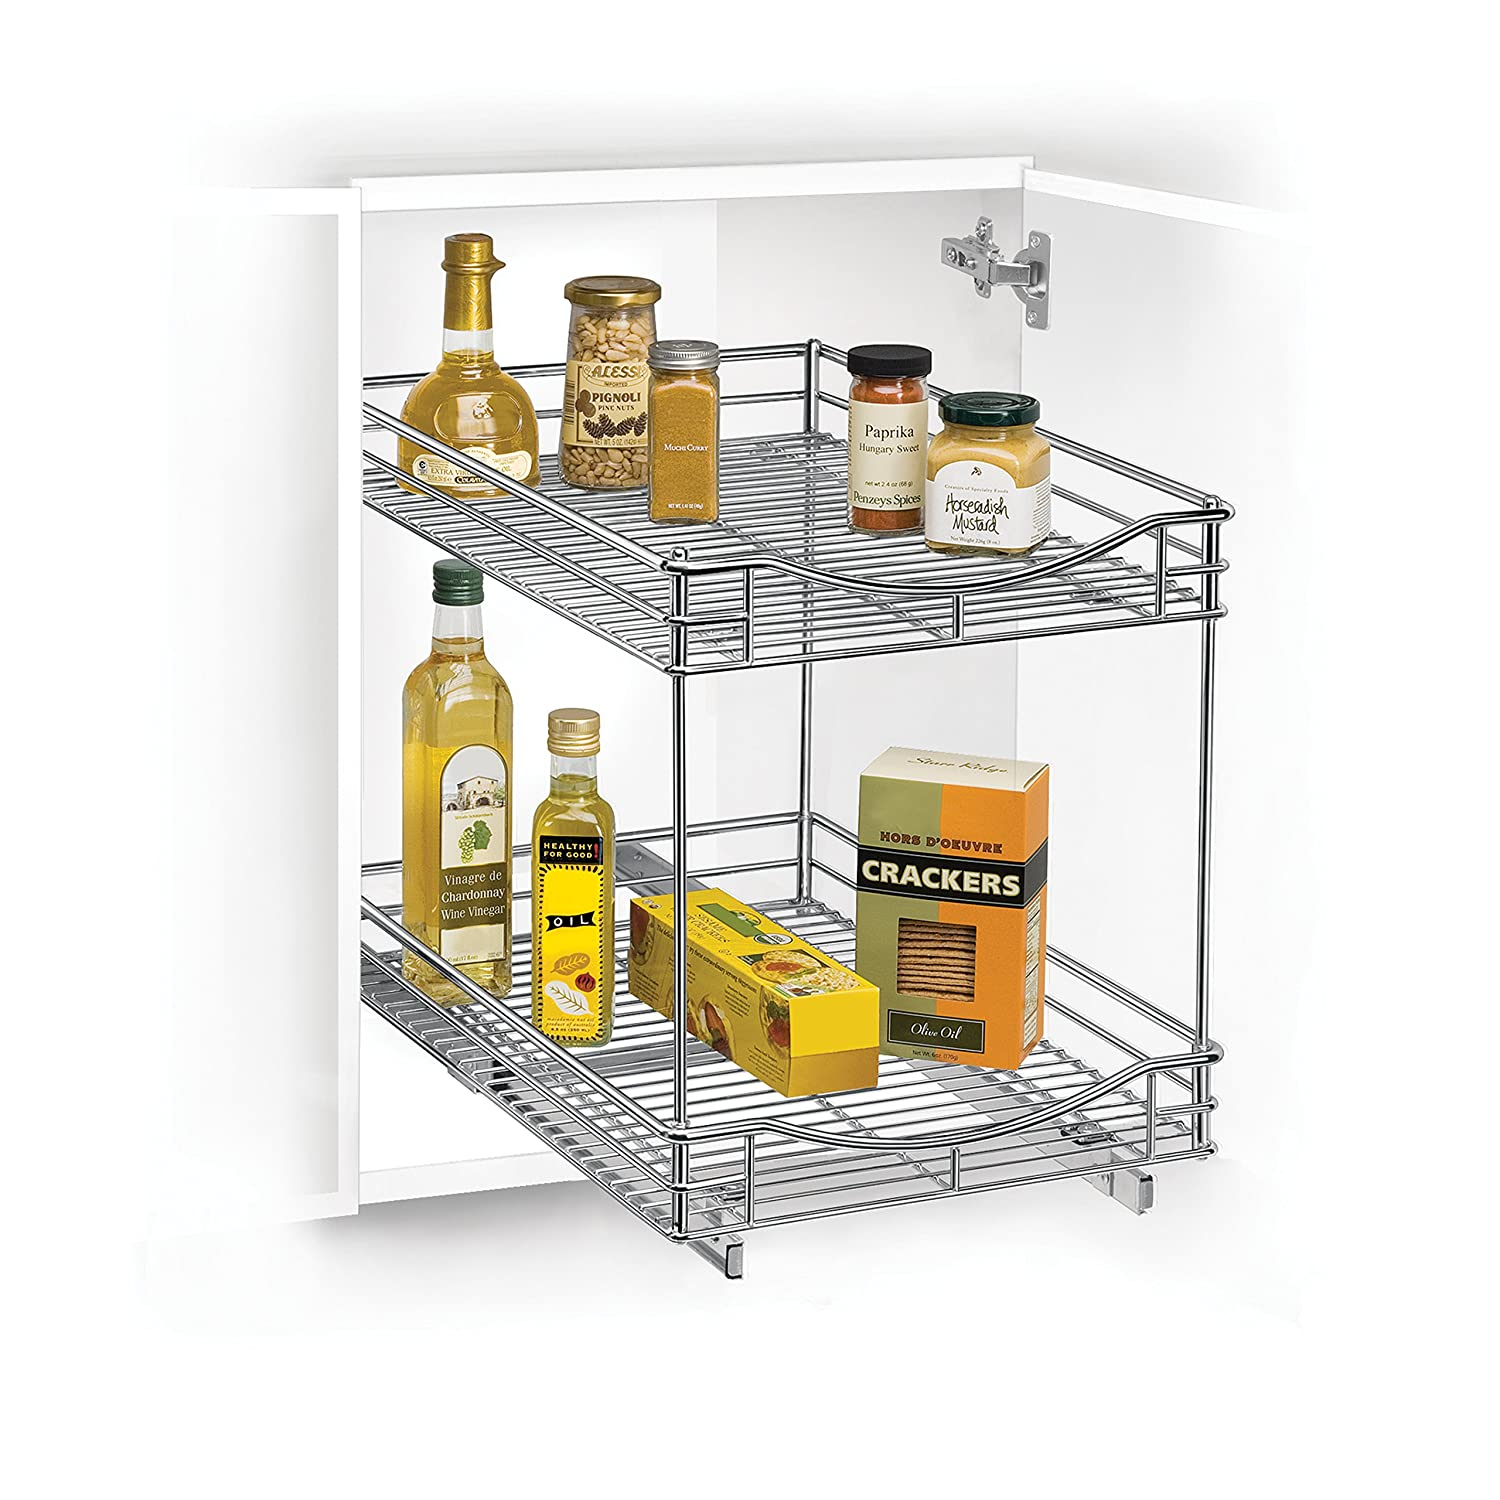 Lynk Roll Out Cabinet Organizer: Lynk Roll Out Two Tier Sliding Under Cabinet Organizer